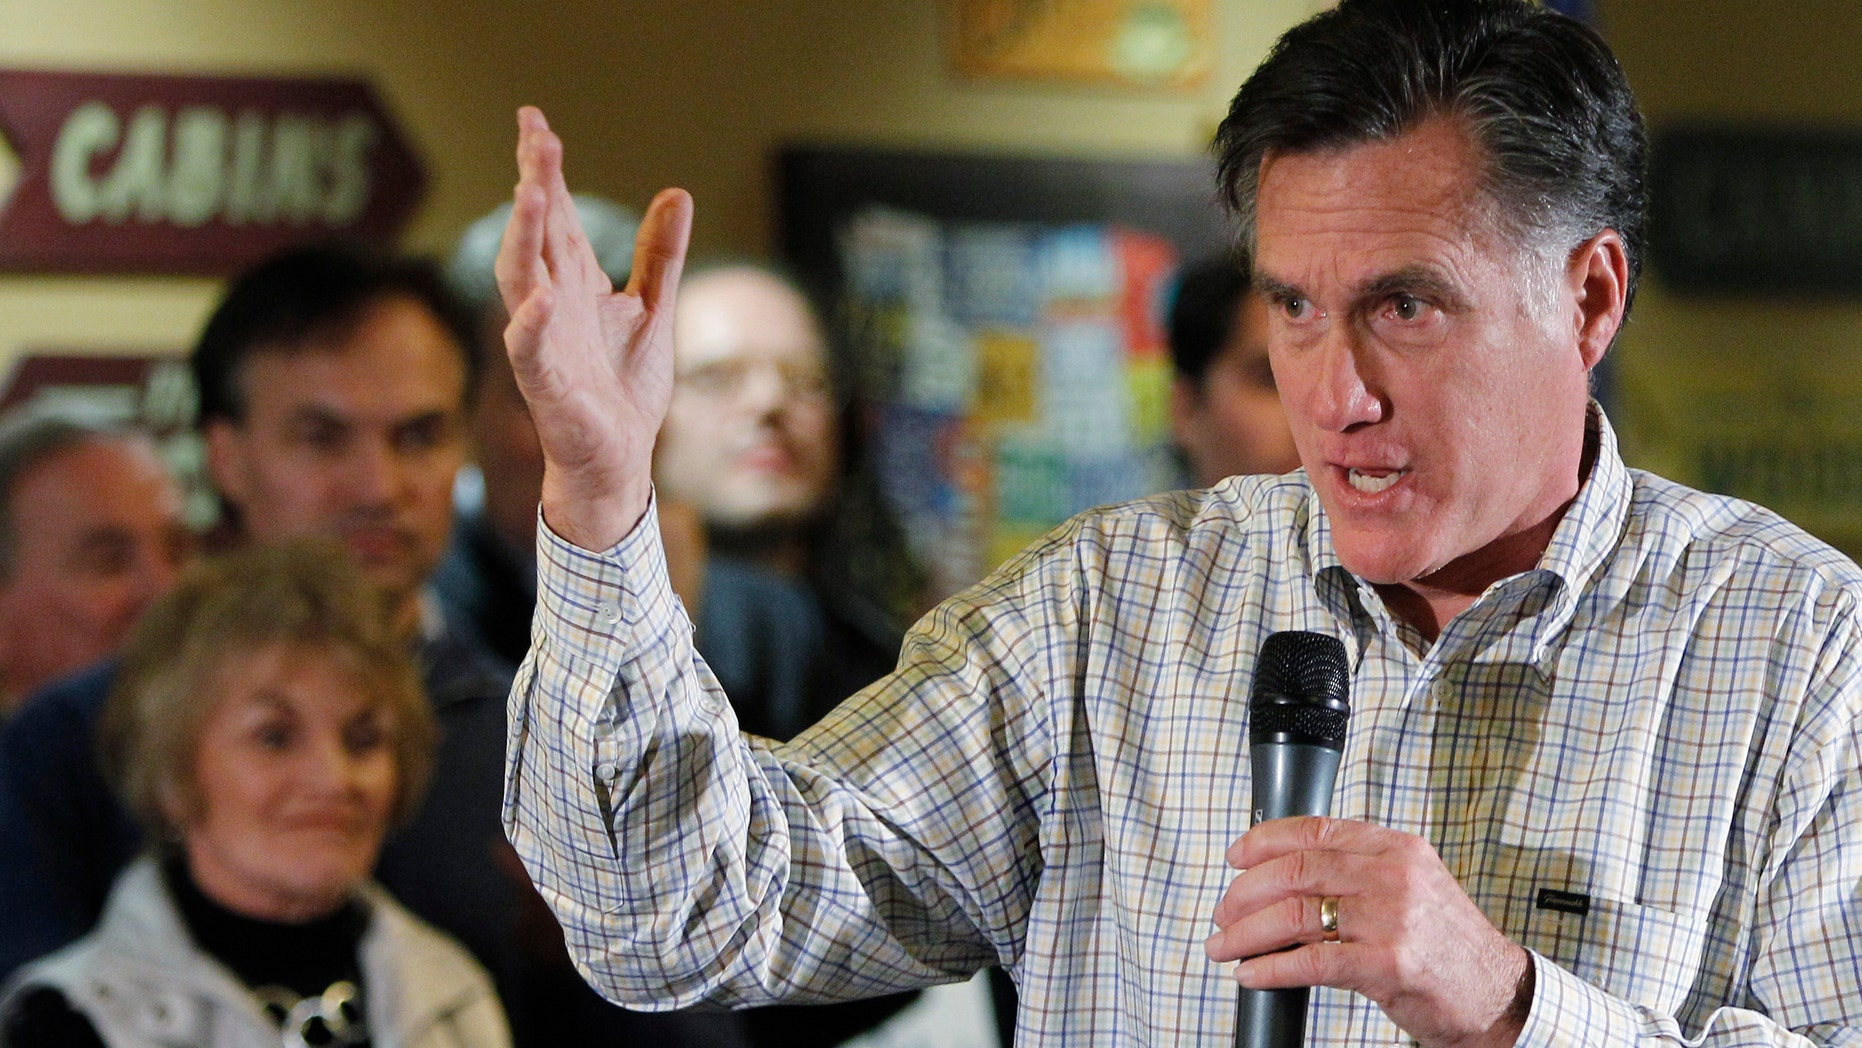 Republican presidential candidate, former Massachusetts Gov. Mitt Romney speaks during a town hall meeting, Saturday, Dec. 31, 2011, in Sioux City, Iowa. (AP Photo/Eric Gay)